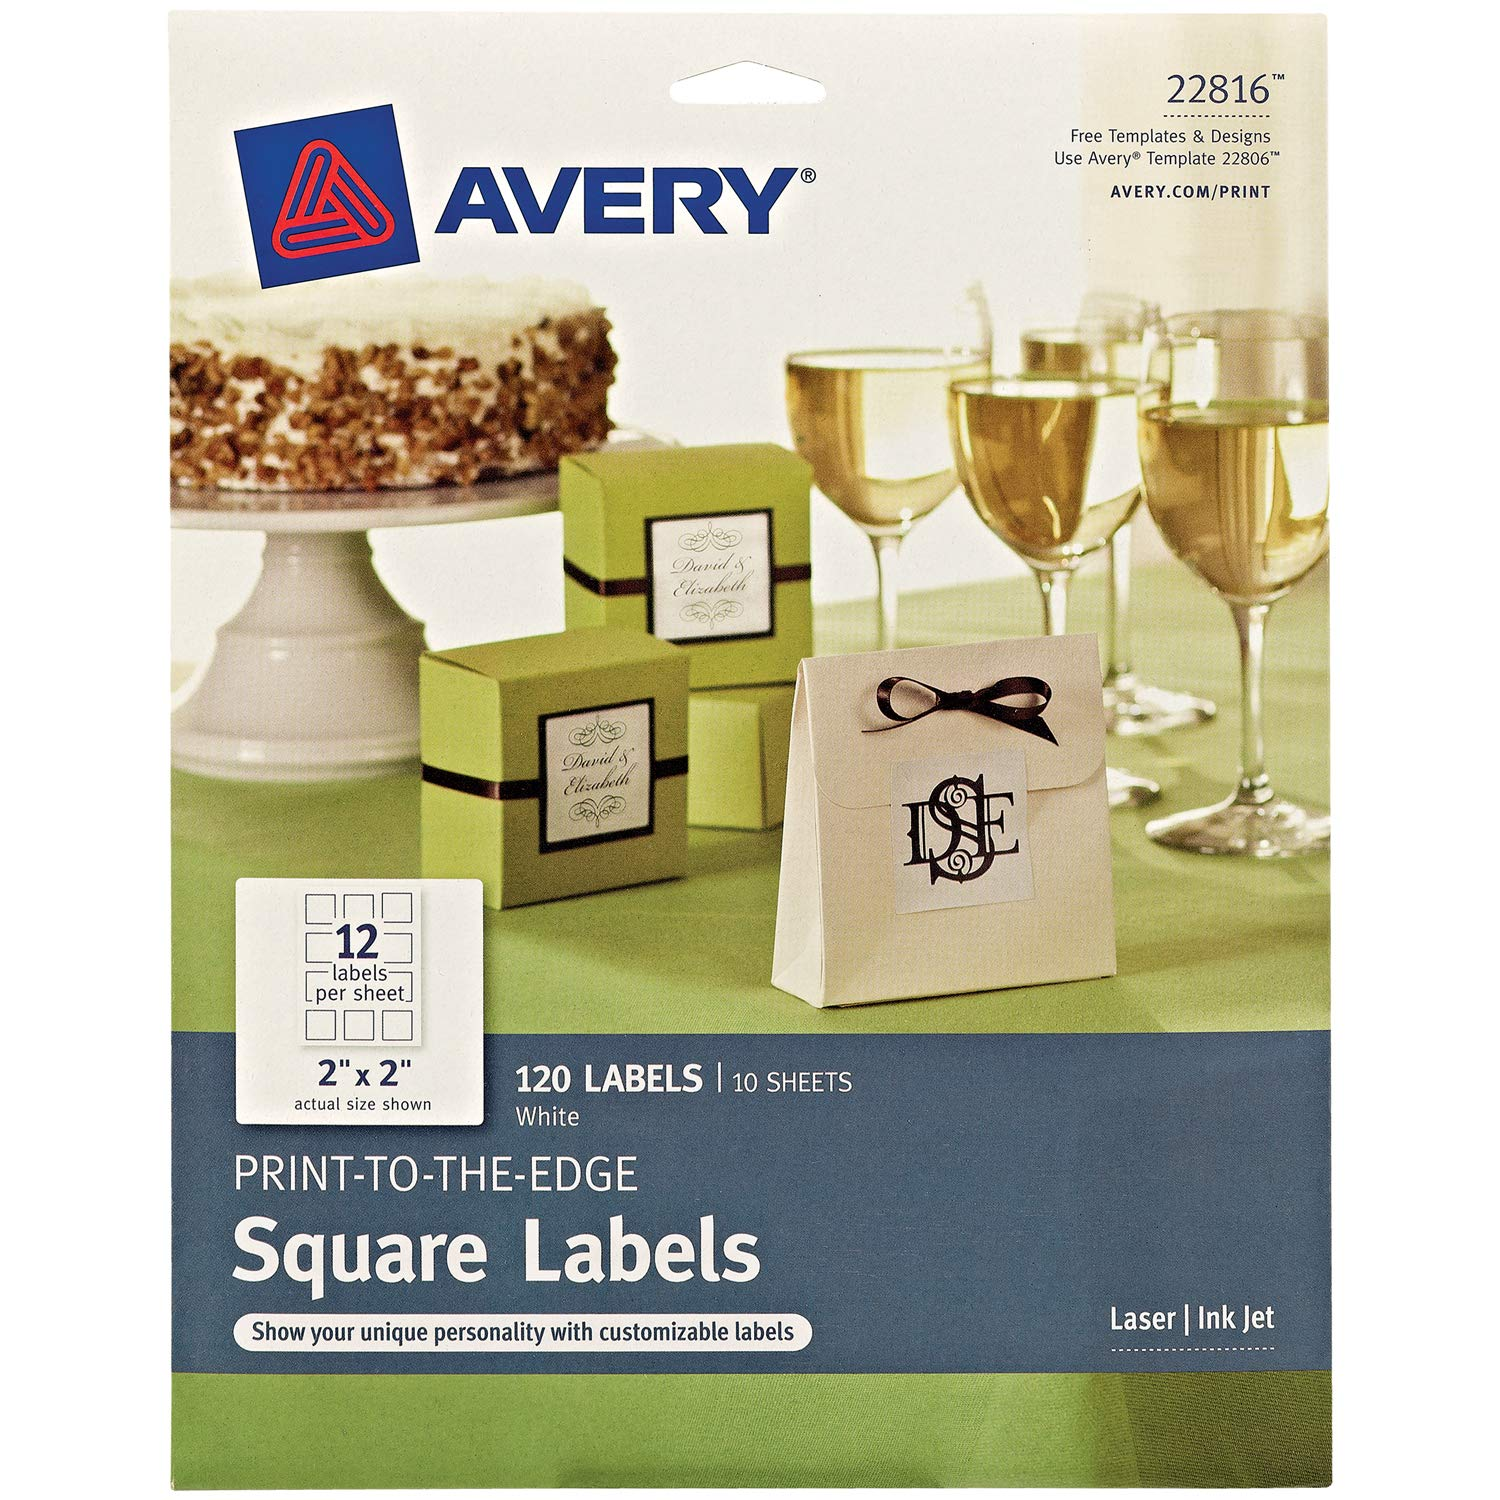 Avery Square Labels for Laser & Inkjet Printers, Print-to-The-Edge, 2'' x 2'', 120 Labels (22816) by Avery (Image #1)